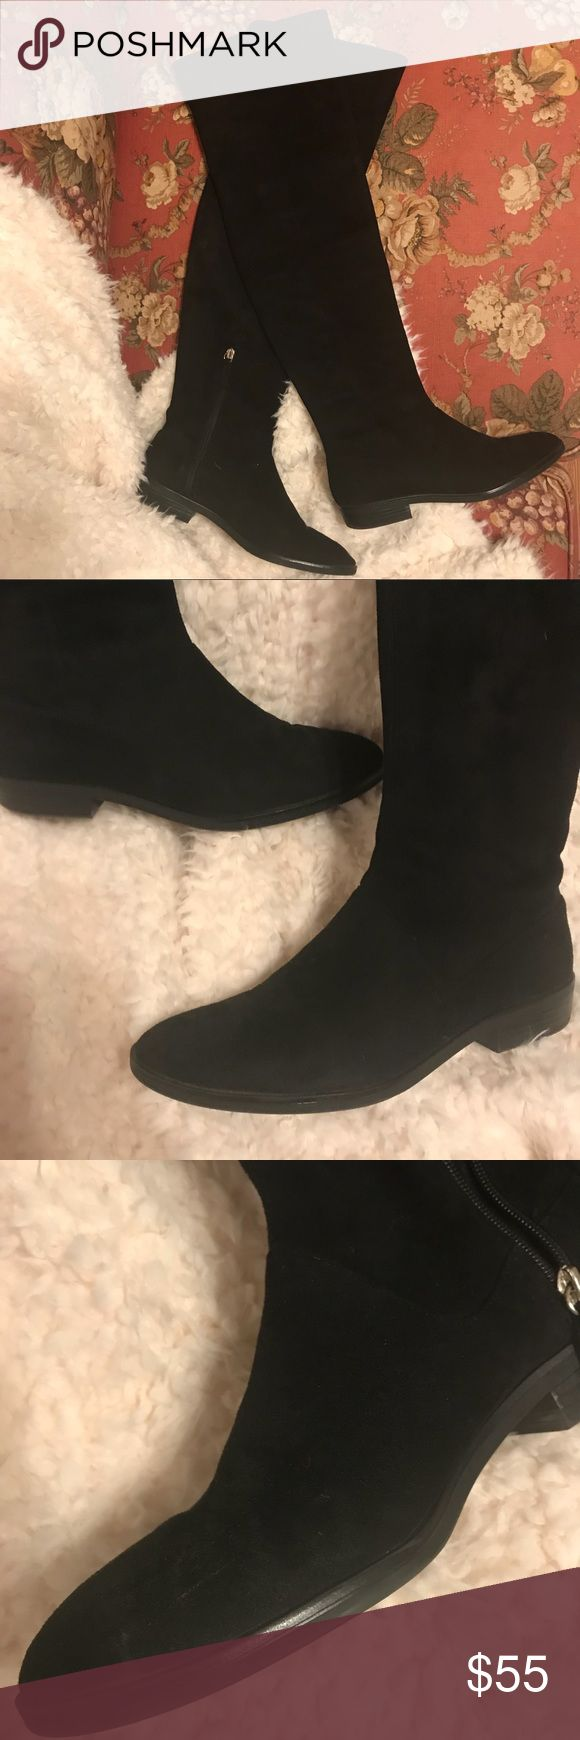 Zara • [39] over the knee boots (Faux?) suede flat OTK boots from Zara.  So cute, I actually can't believe I'm selling them.  But I have to downsize!  Great over jeans, leggings, or tights.  A few minor scuffs but nothing really noticeable.  Size 39, fits an 8. Zara Shoes Over the Knee Boots